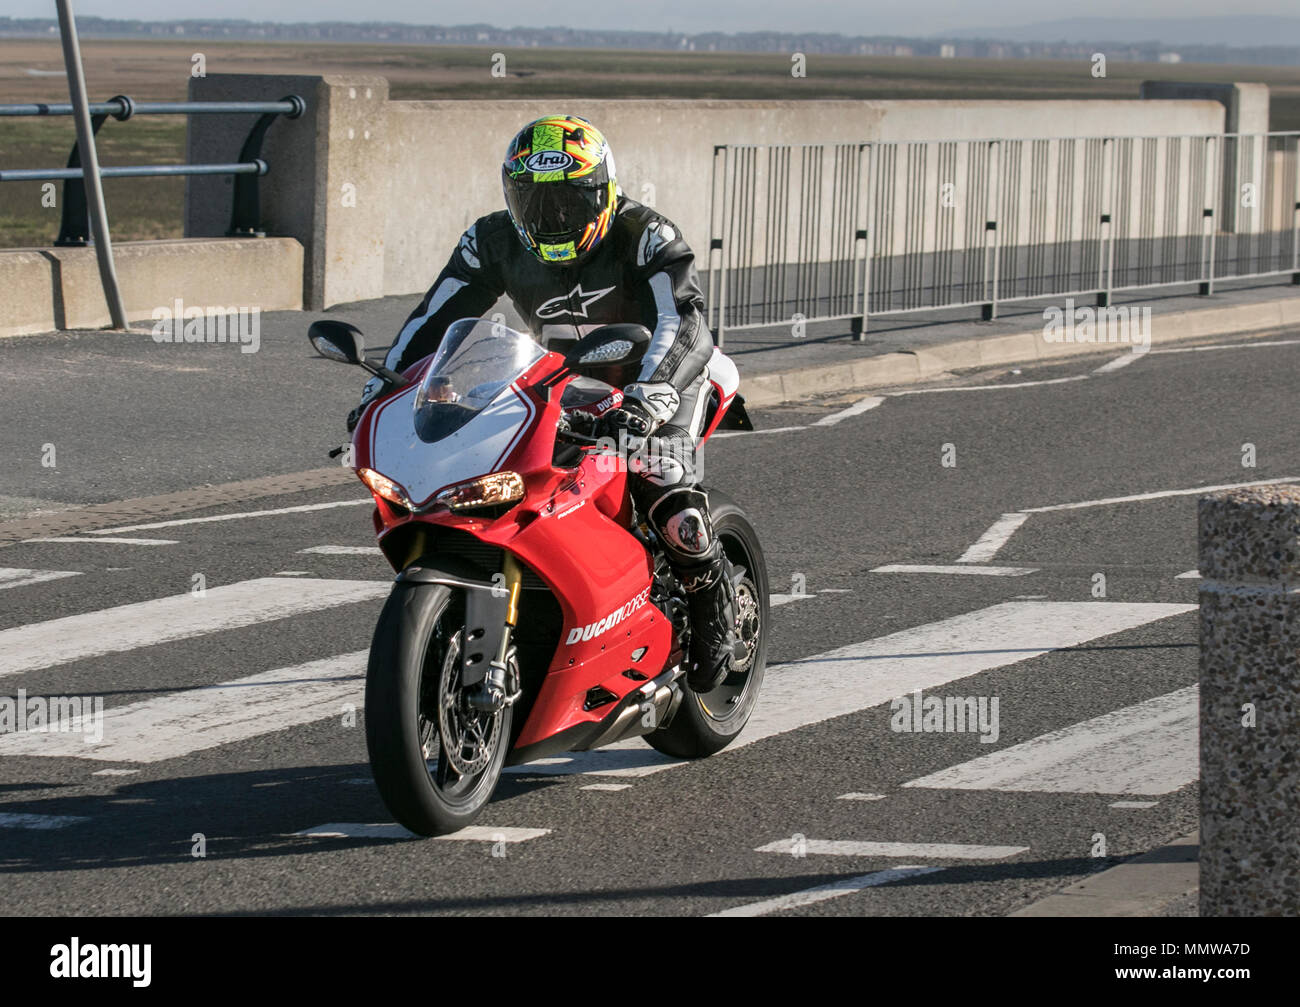 Ducati Panigale R Motorcycle being ridden on Marine Drive, Southport, UK Stock Photo